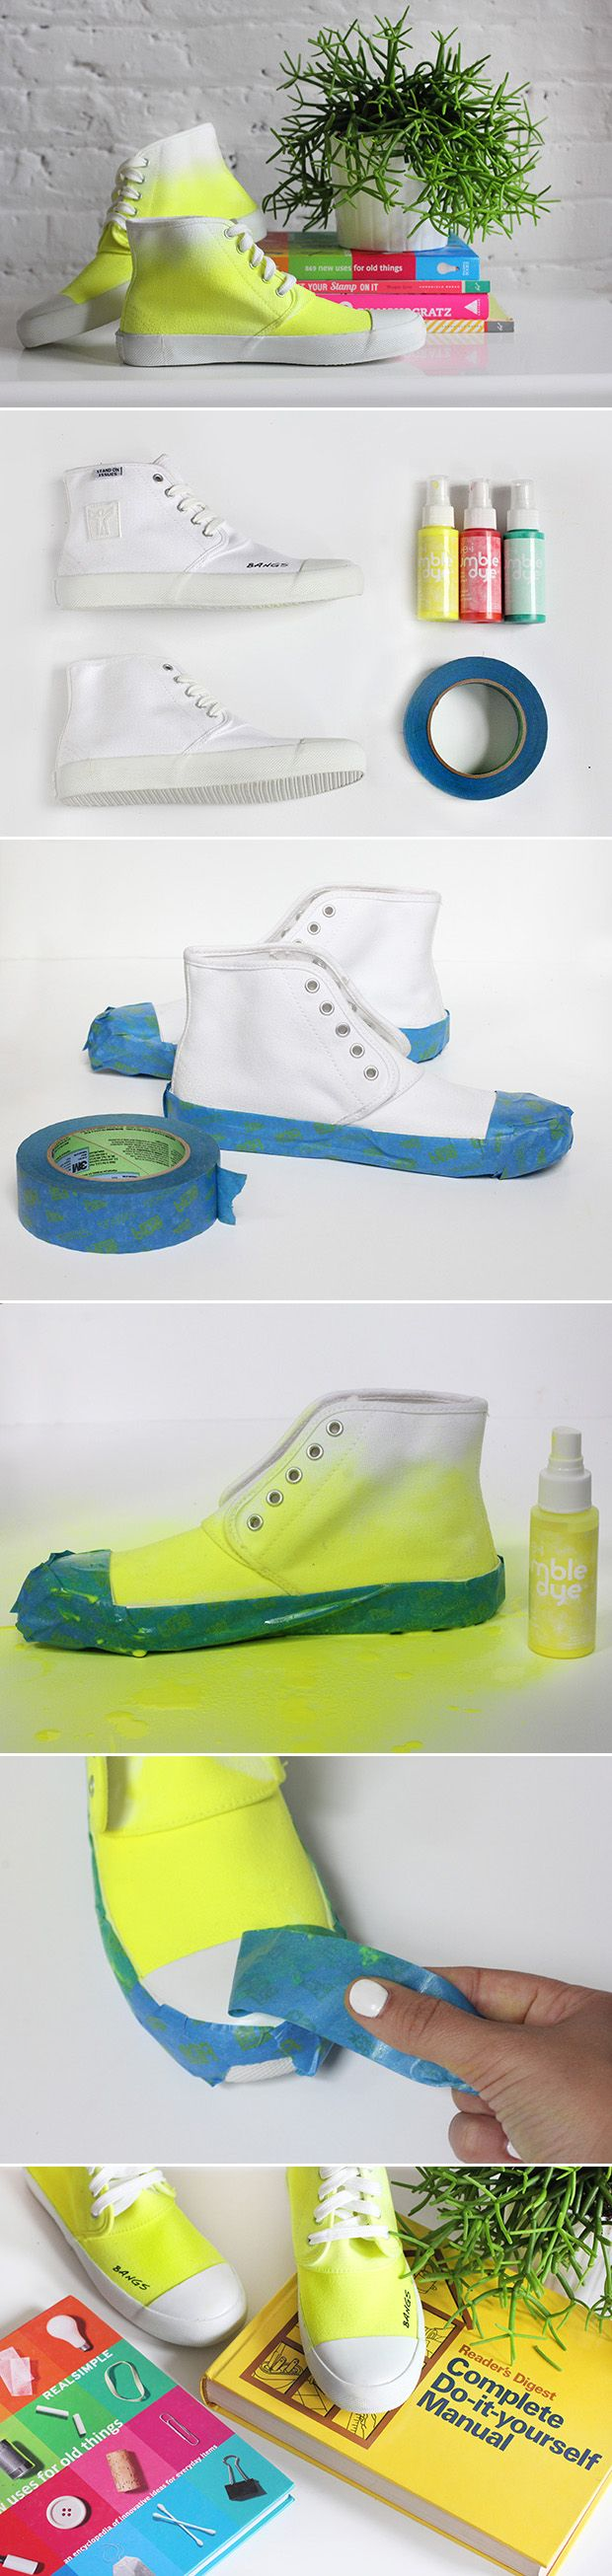 DIY your very own ombre neon sneakers! Your tween will love this DIY project and will want to show off his or her new kicks all summer long.